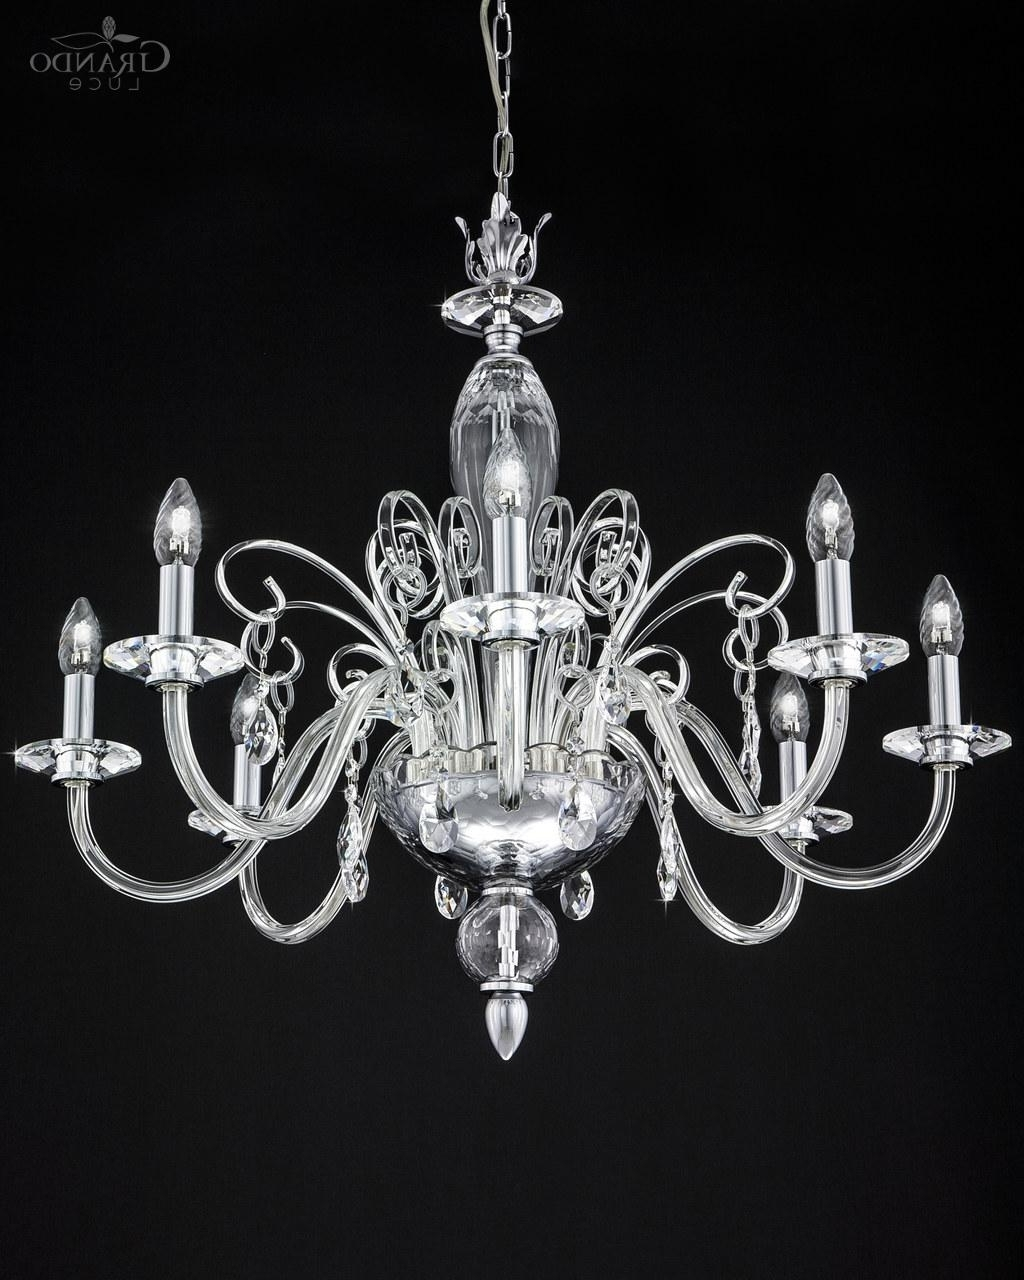 120/ch 8 Chrome Crystal Chandelier With Swarovski Elements. – Grandoluce Intended For Preferred Crystal Chrome Chandeliers (Gallery 19 of 20)